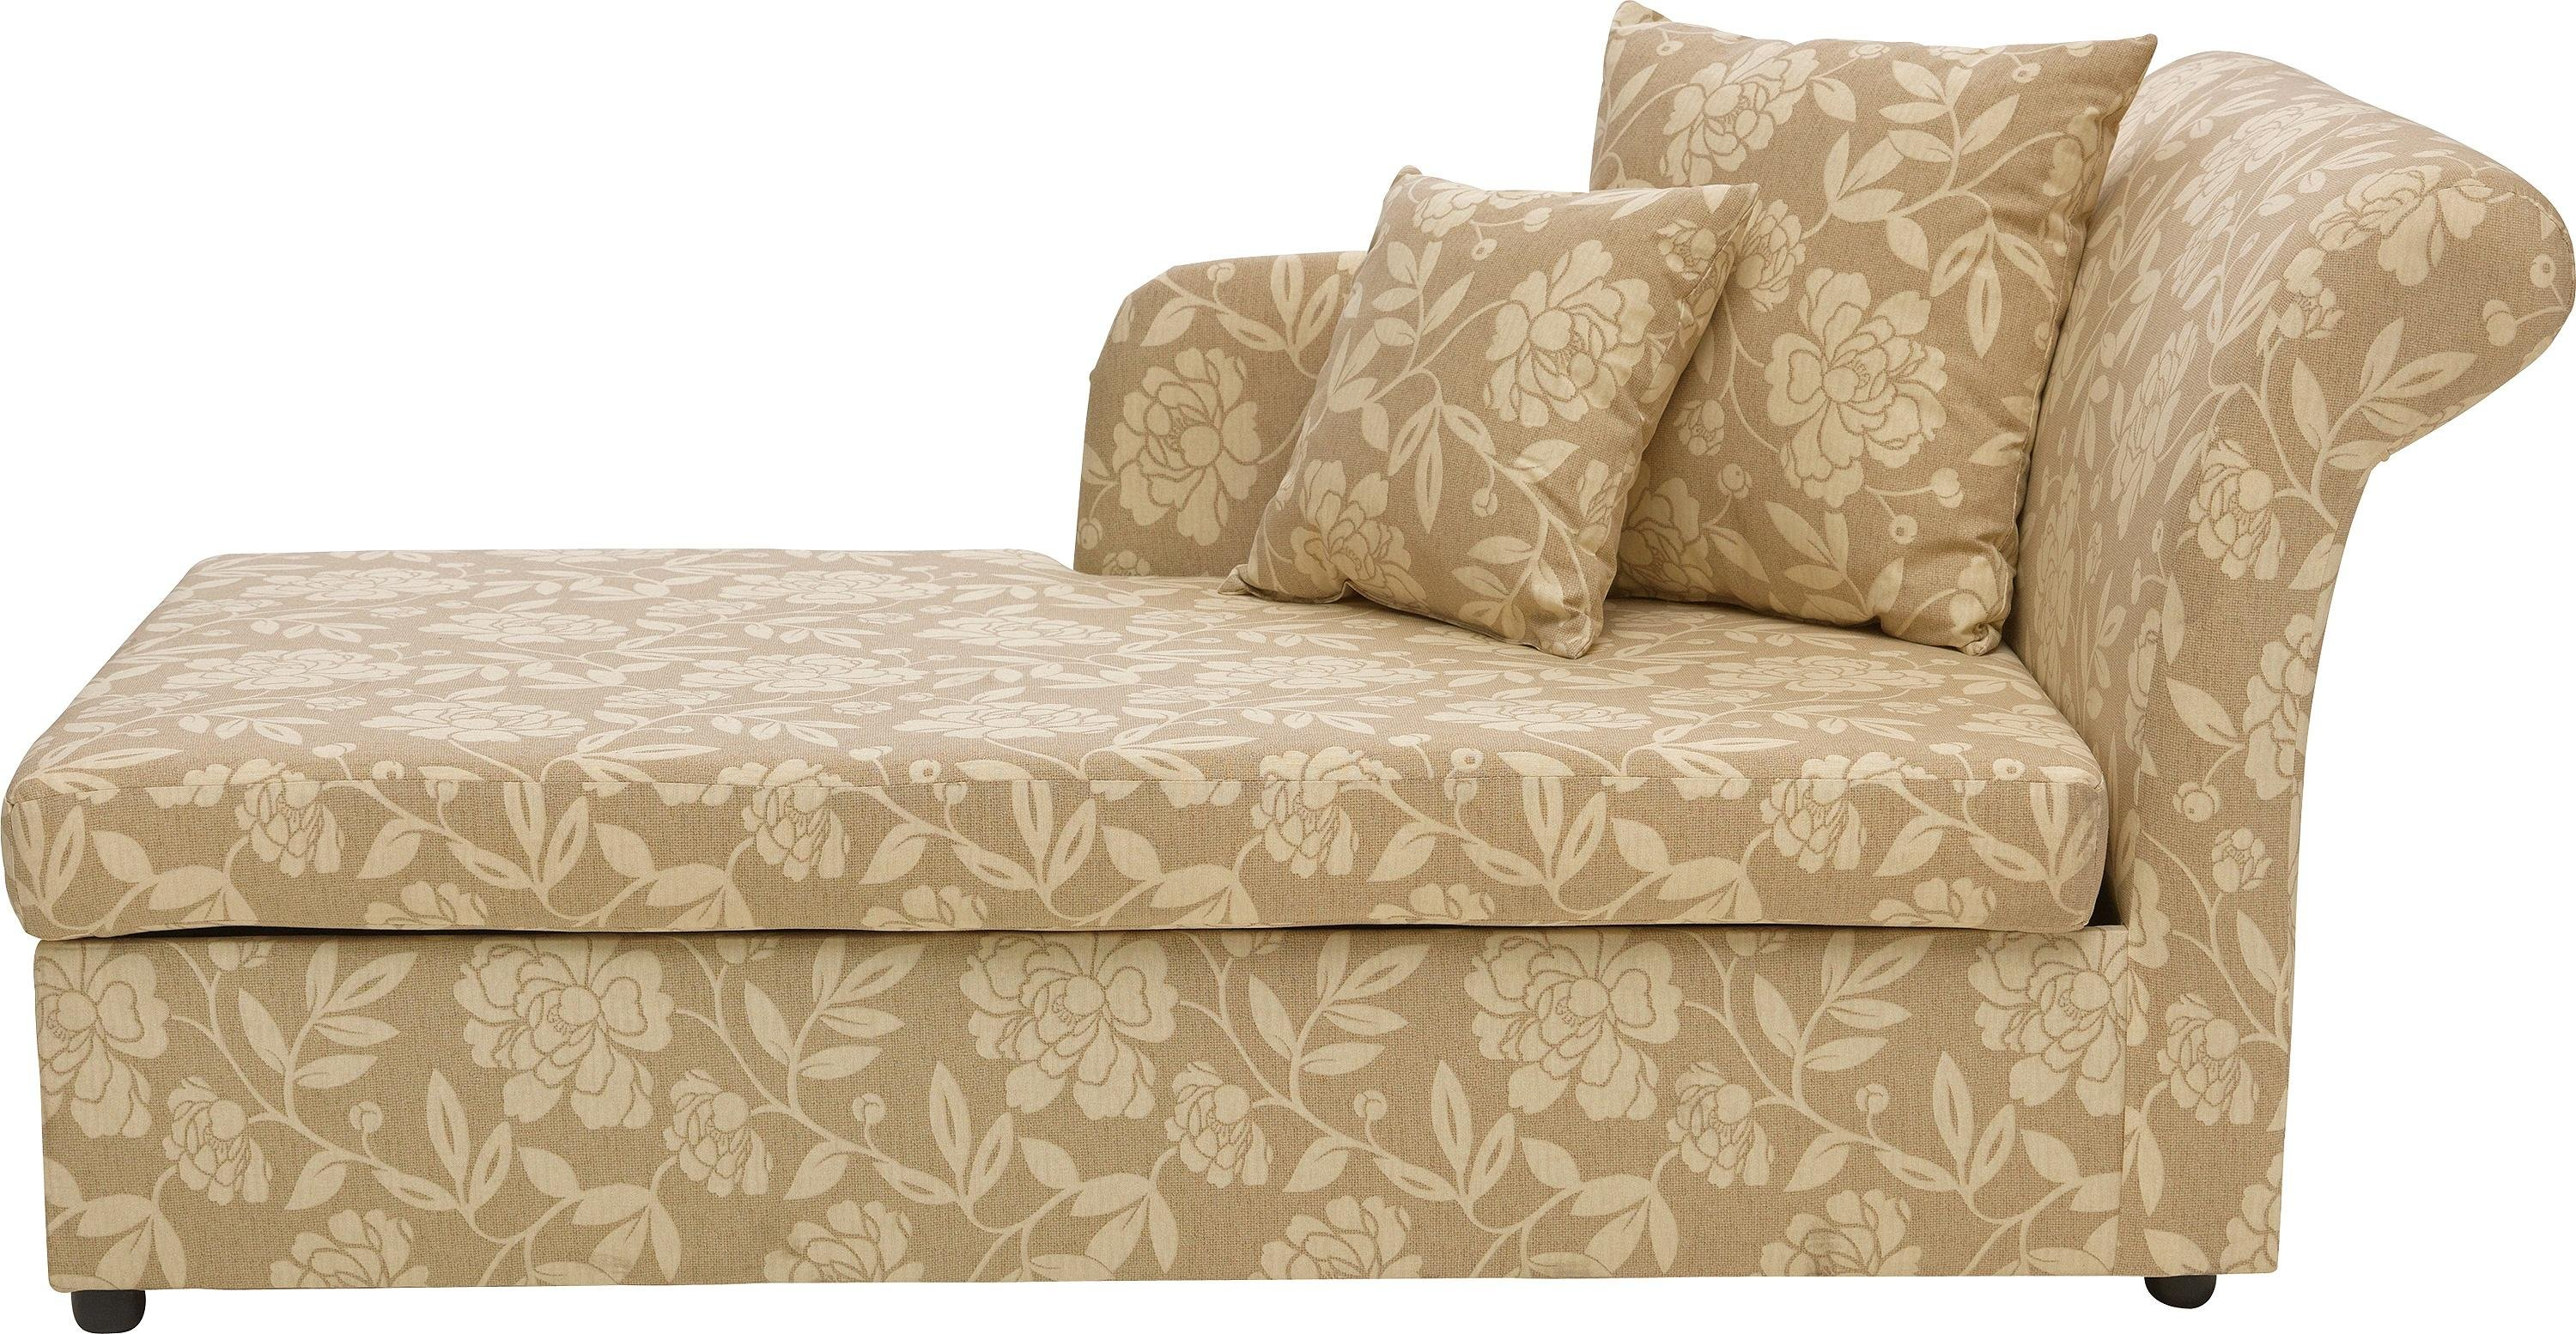 Home Floral 2 Seater Fabric Chaise Longue Sofa Bed - Natural  sc 1 st  Argos : argos chaise lounge - Sectionals, Sofas & Couches